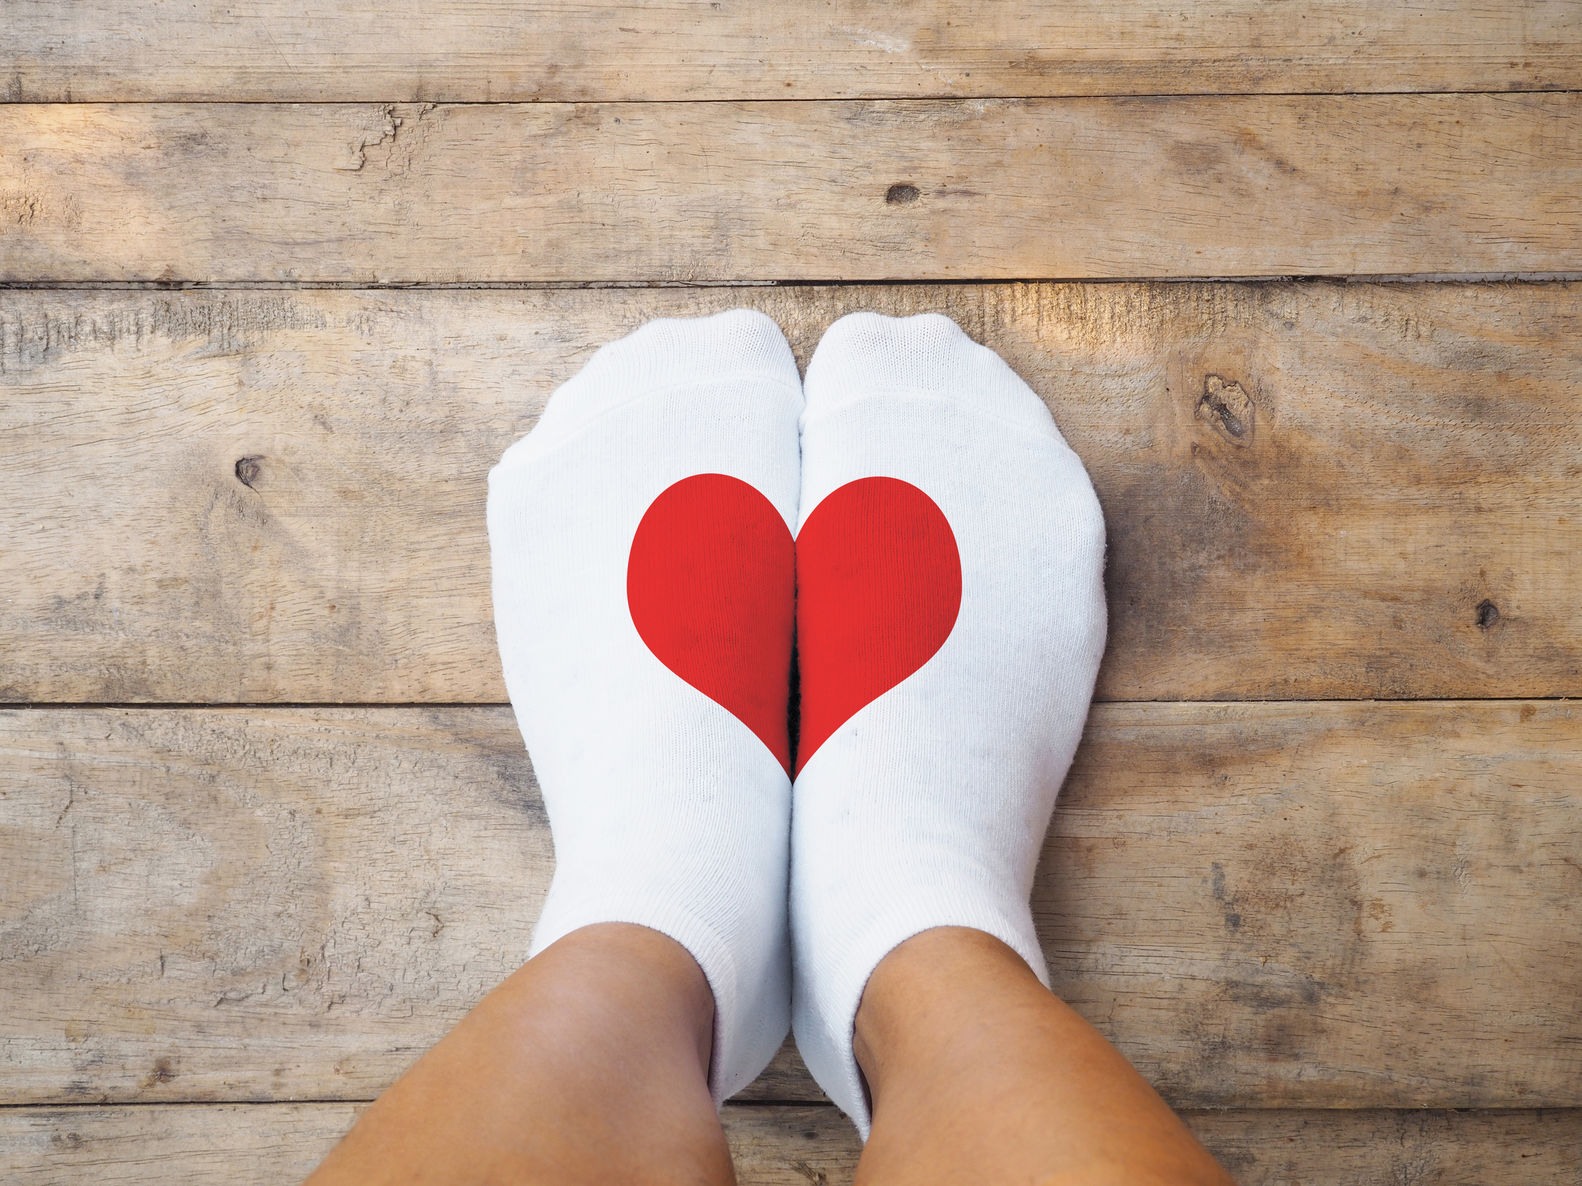 69908797_L_Feet_socks_Heart_white sock_foot_cold.jpg